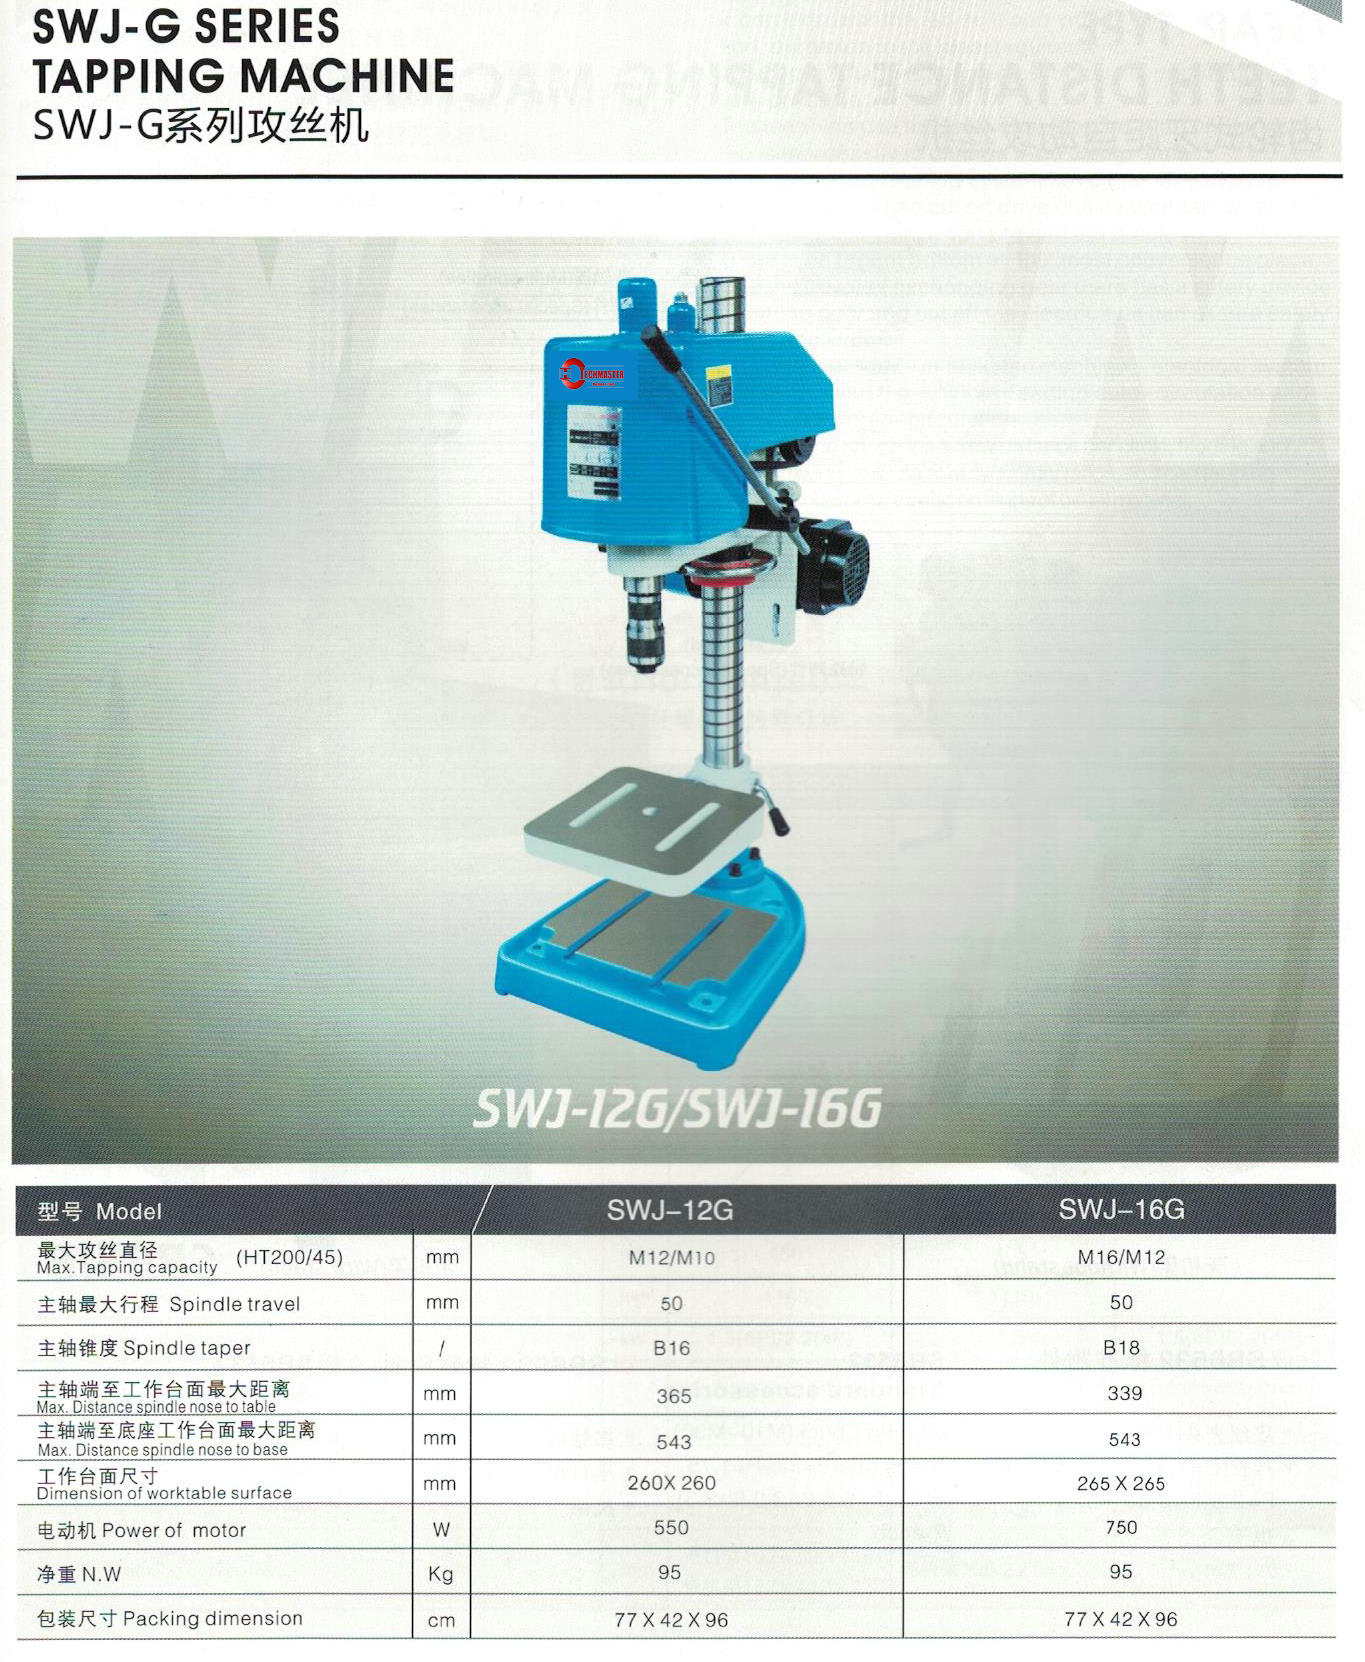 NEW TYPE SWJ-G SERIES TAPPING MACHINE SWJ-16G